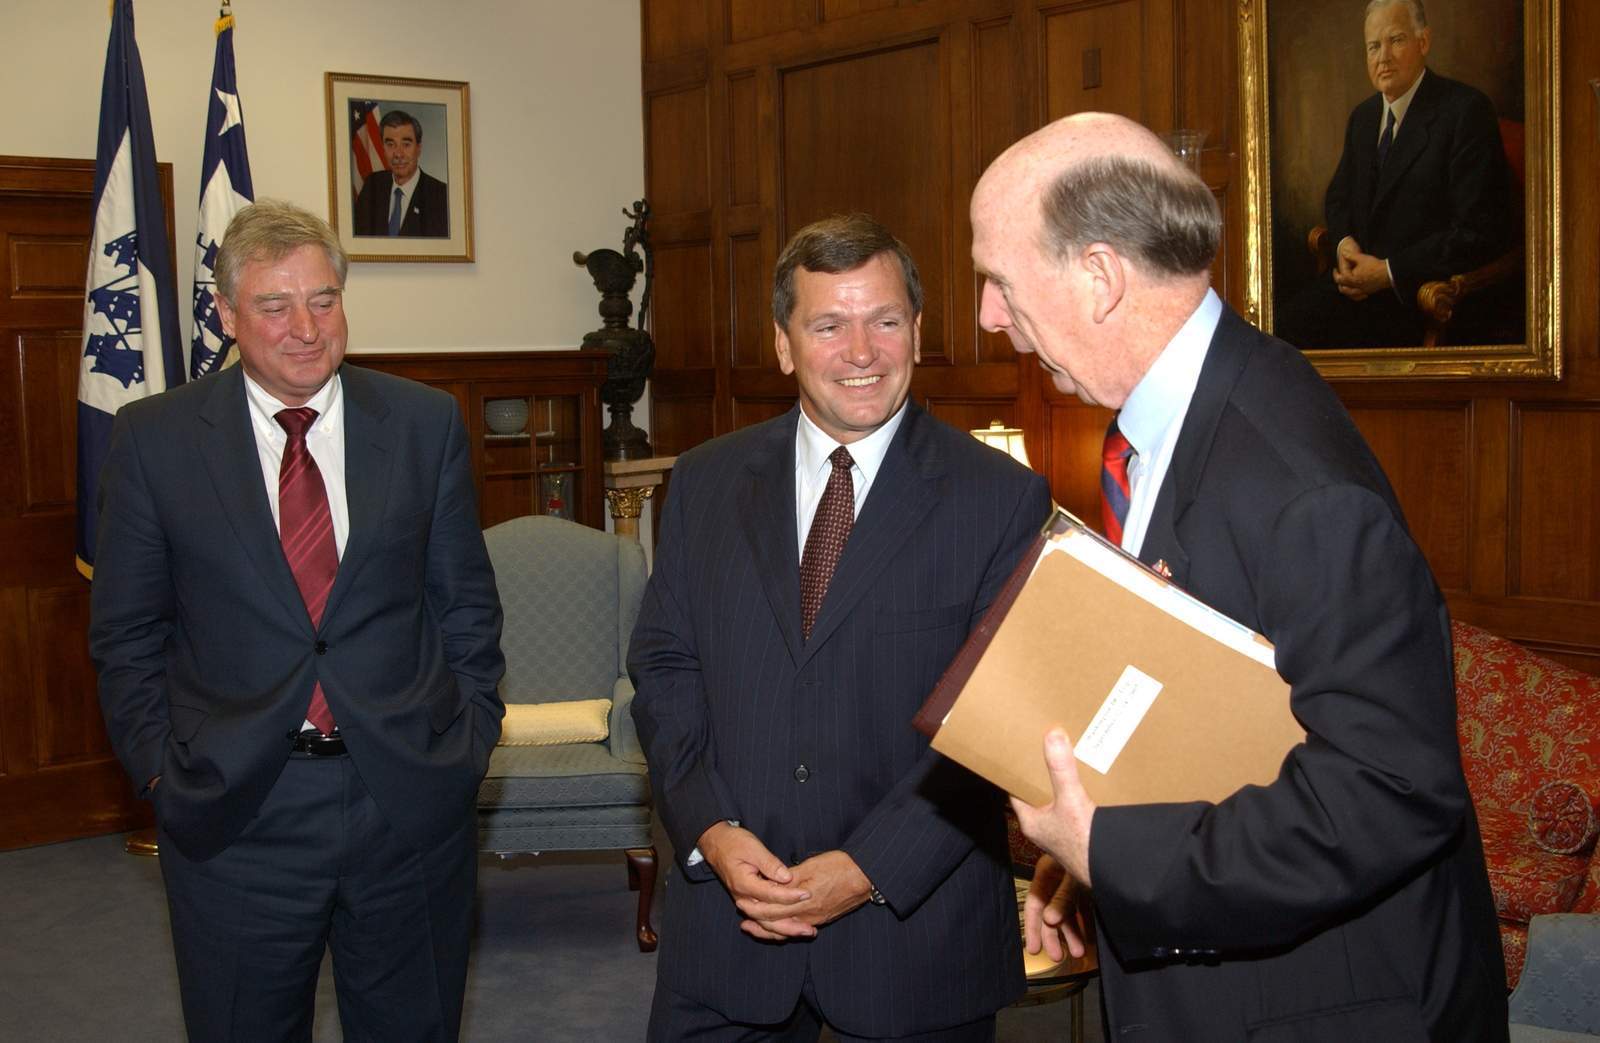 [Assignment: OS_2005_1201_317] Office of the Secretary - Canadian Minister with Secretary Carlos Gutierrez [40_CFD_OS_2005_1201_317_651.JPG]